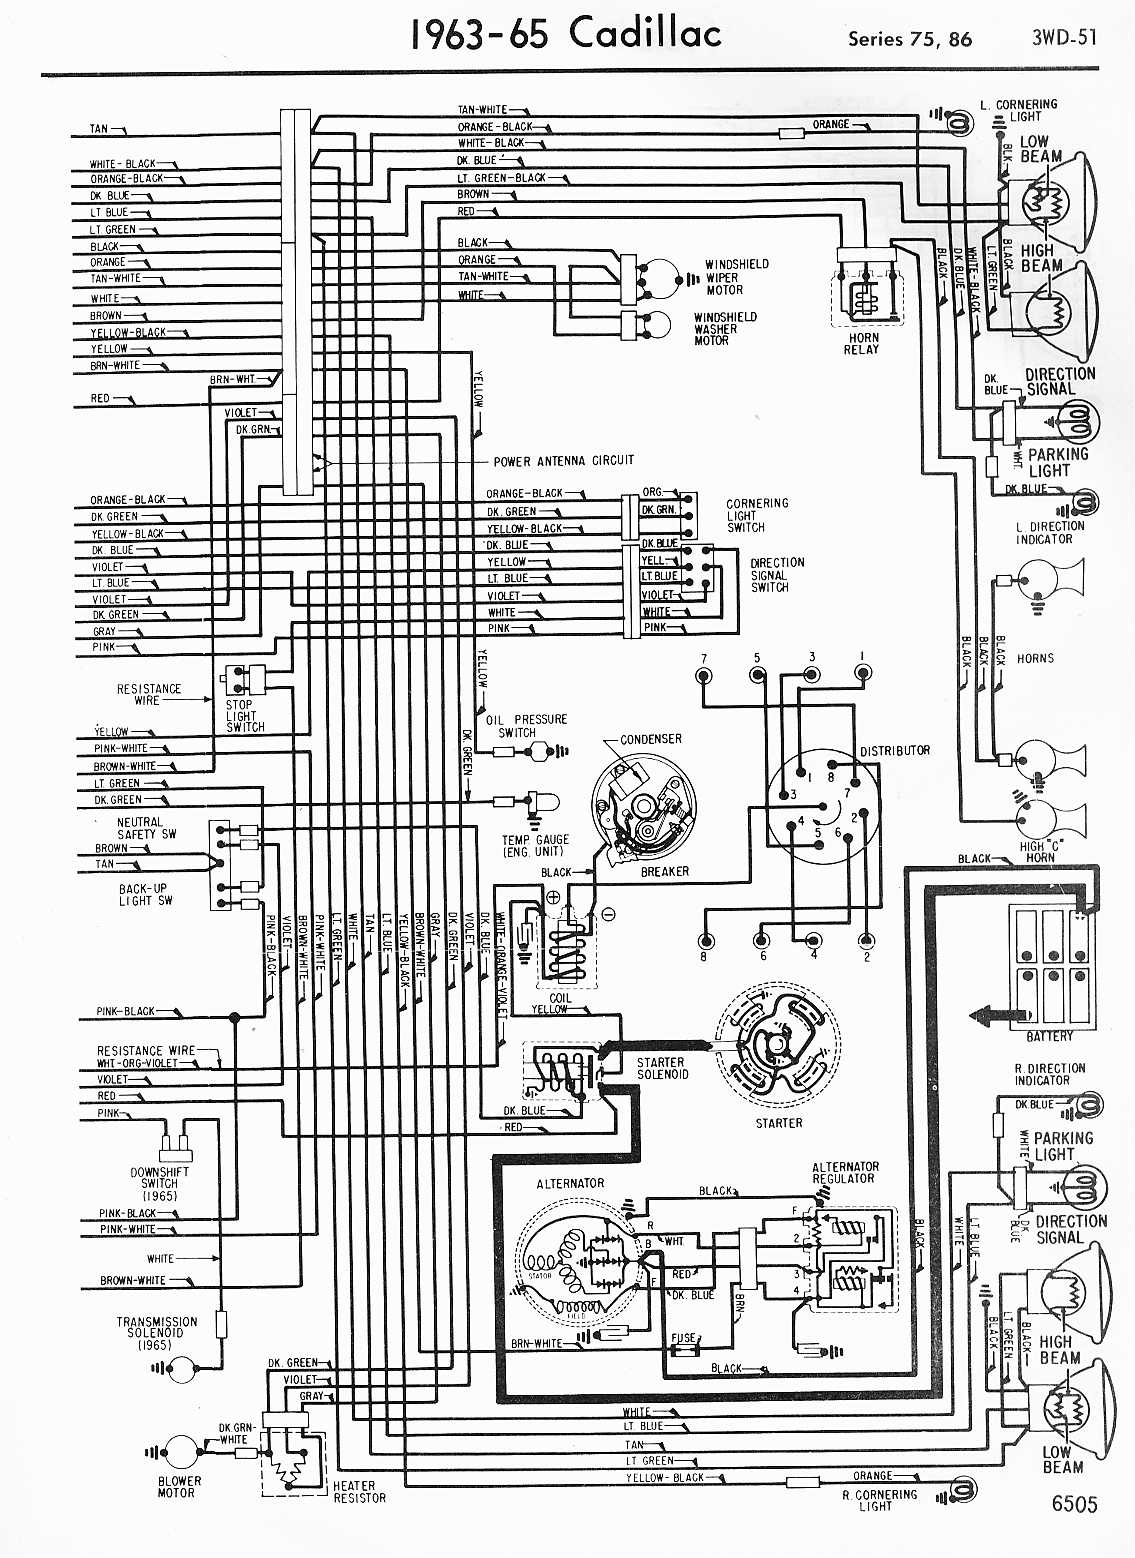 2002 Cadillac Deville Fuse Diagram Wiring Library 02 Box Location Diagrams 1957 1965 Rh Oldcarmanualproject Com 1964 Coupe 1968